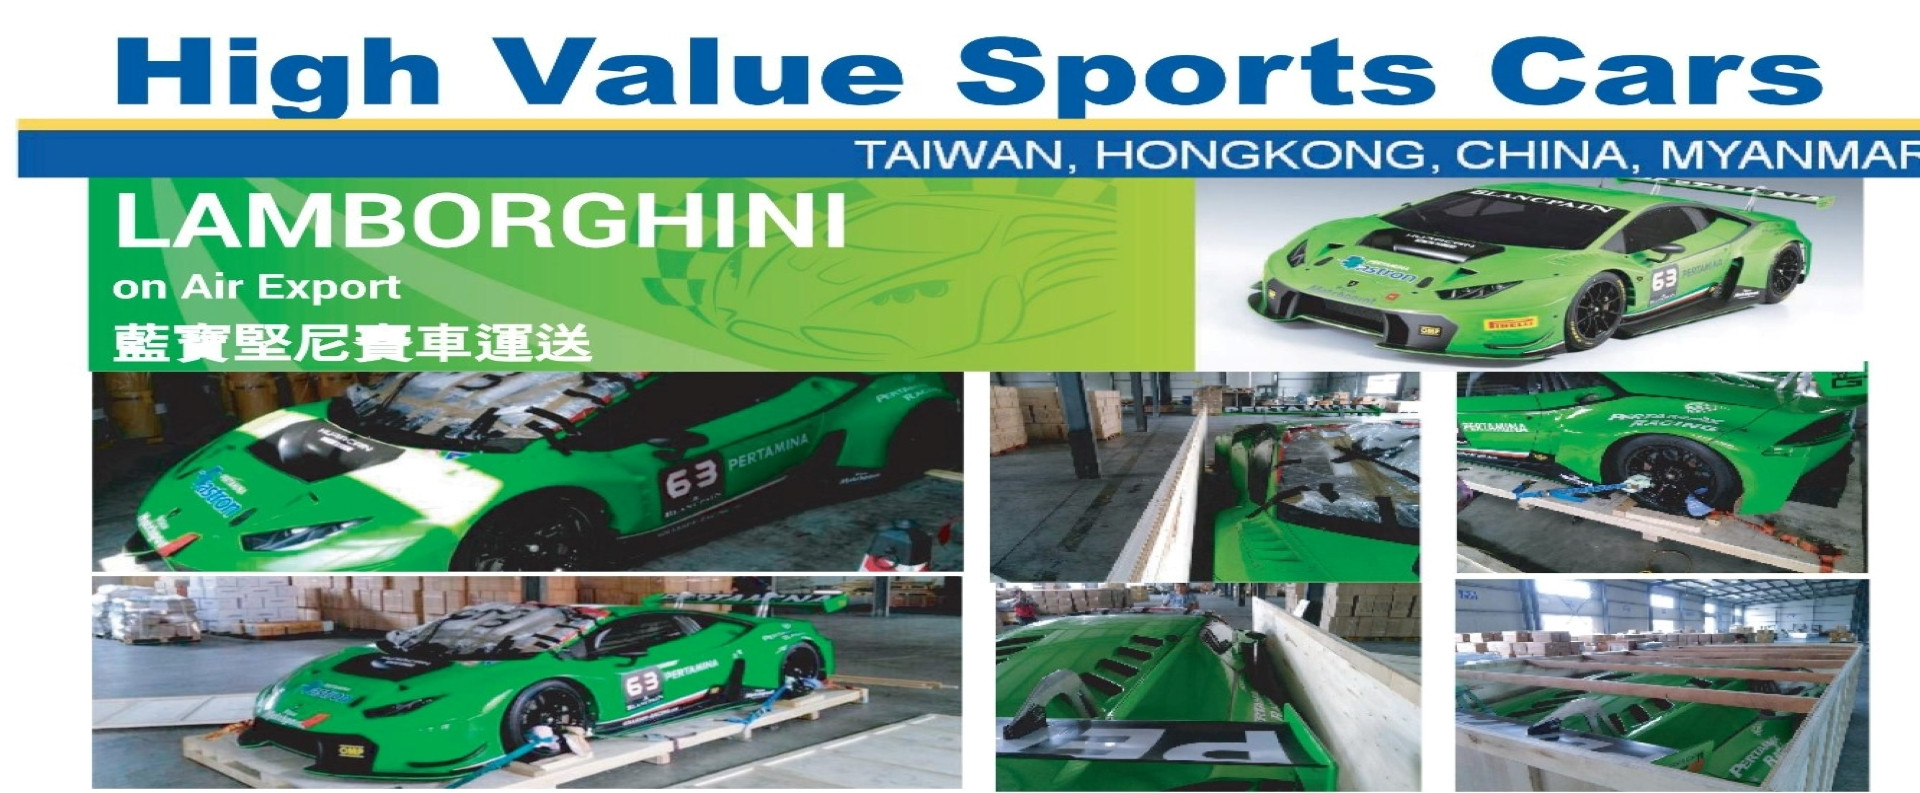 High Value Sports Cars